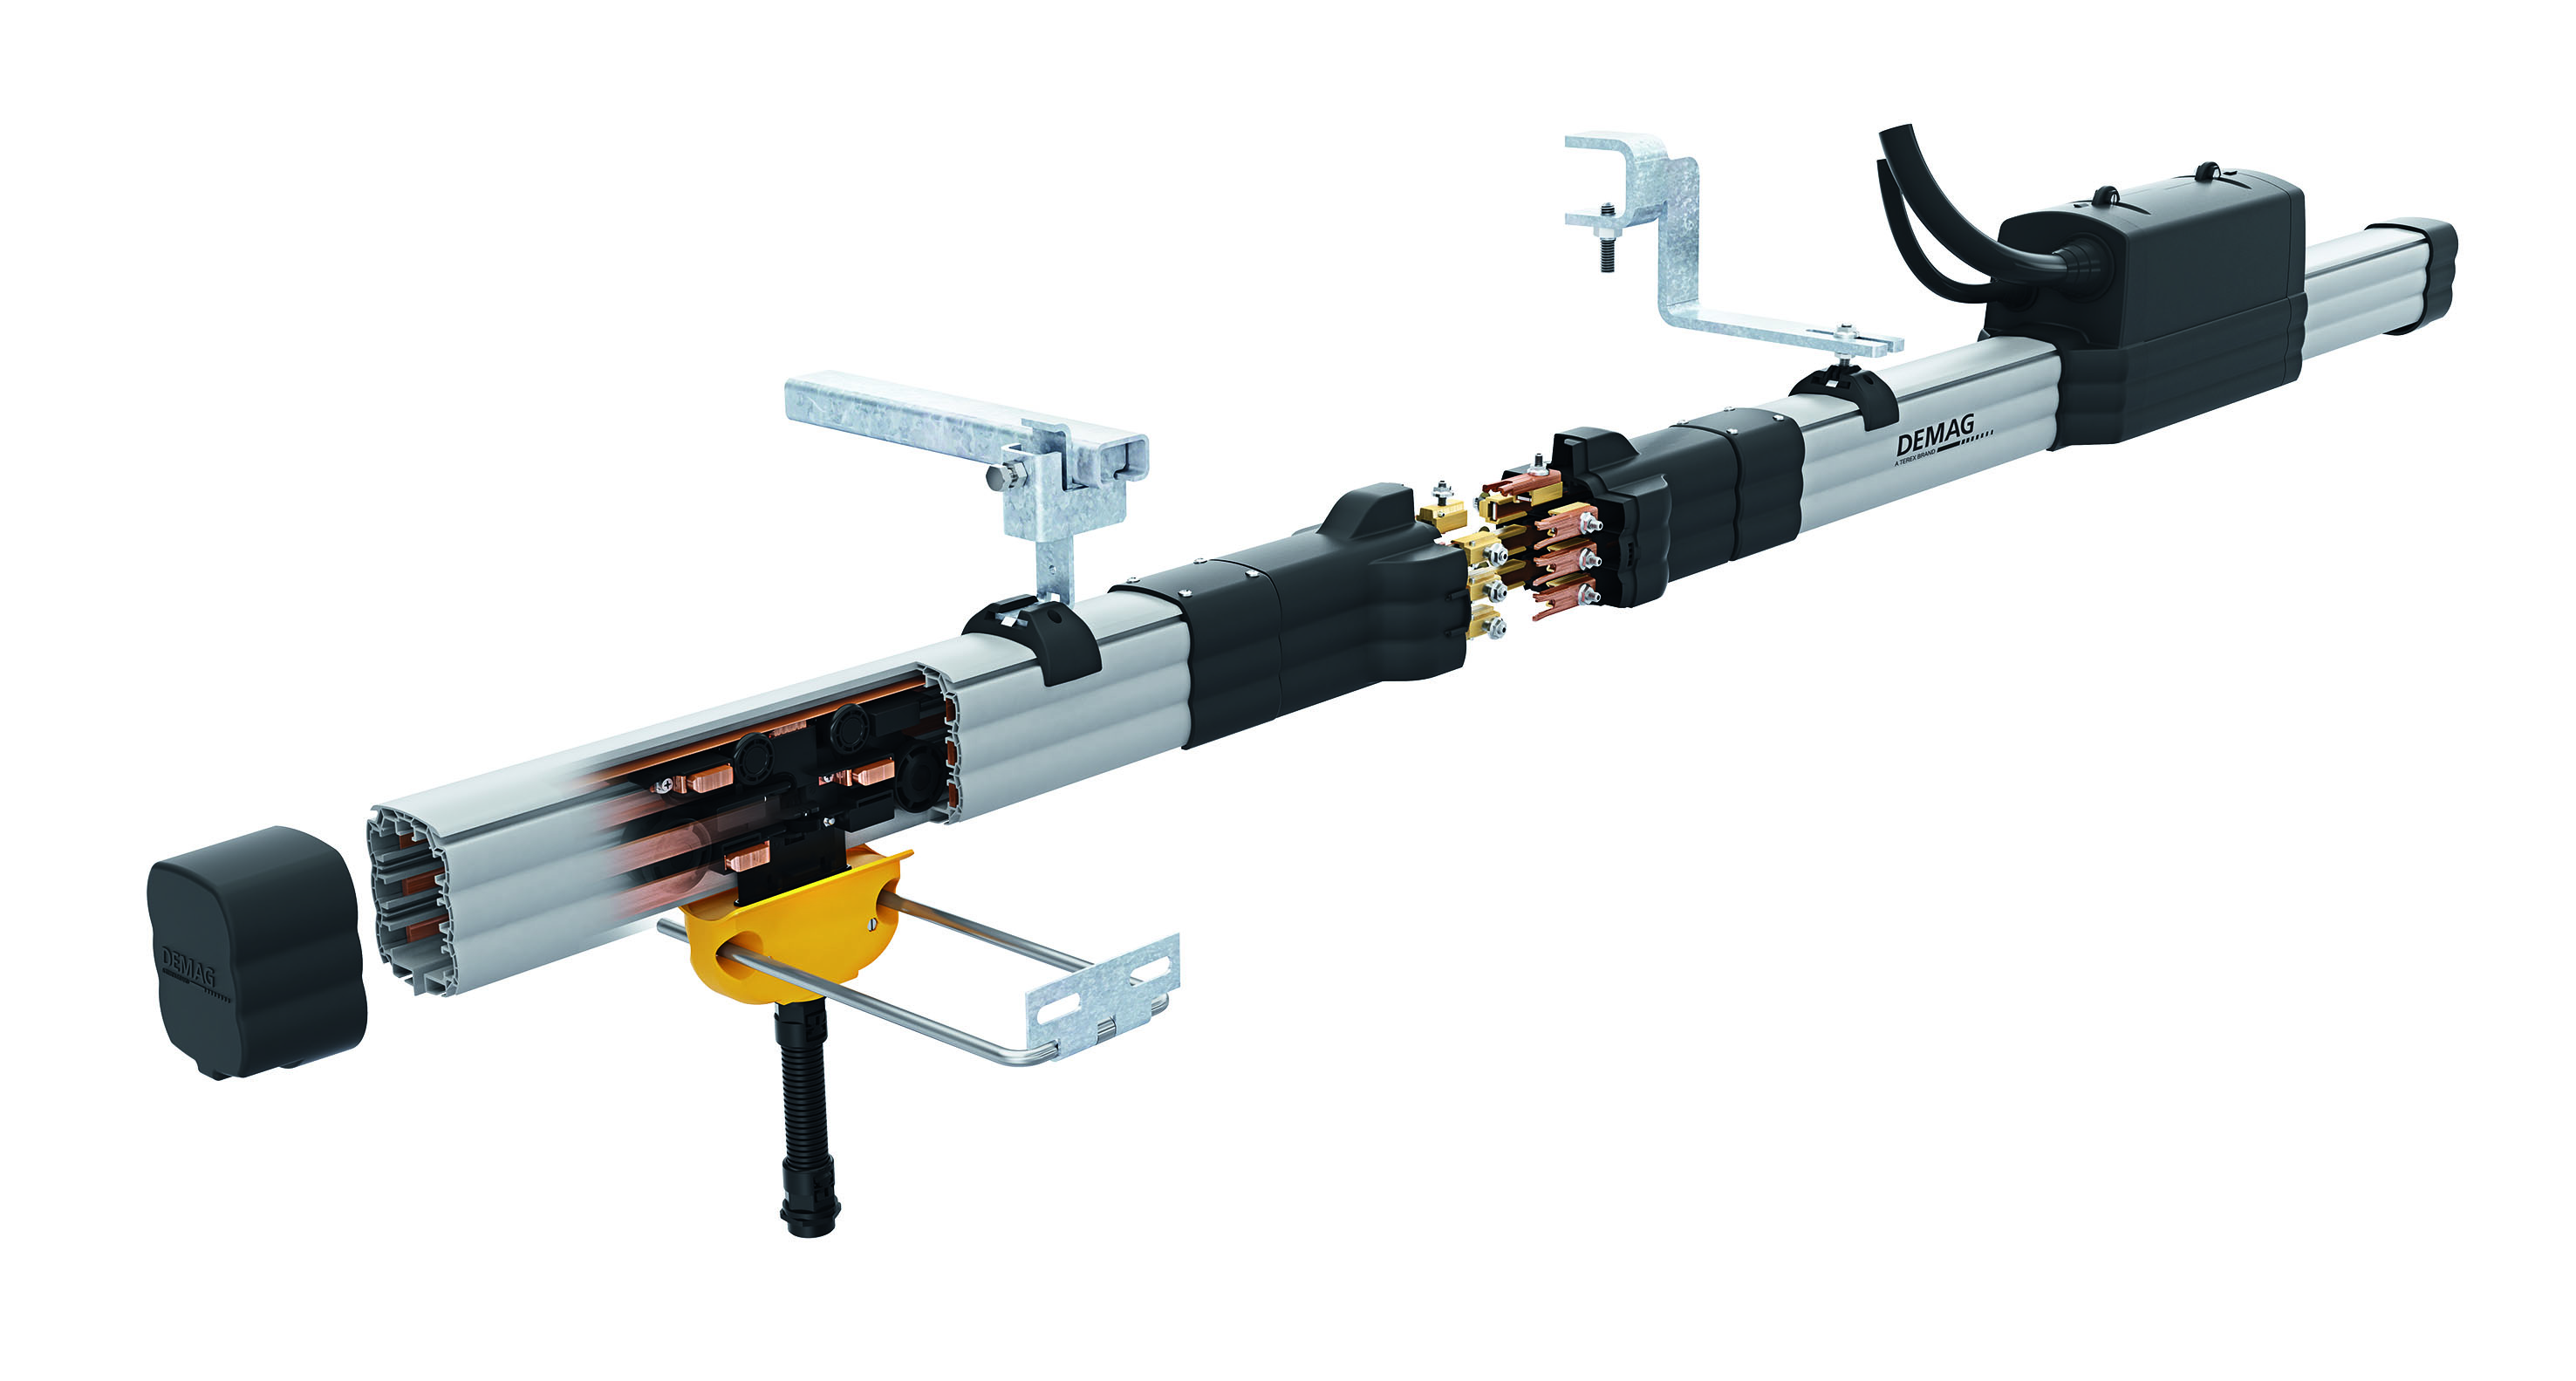 The new bracket (right) in combination with the threaded pin suspension enables installation times for DCL-Pro compact conductor lines to be significantly reduced.